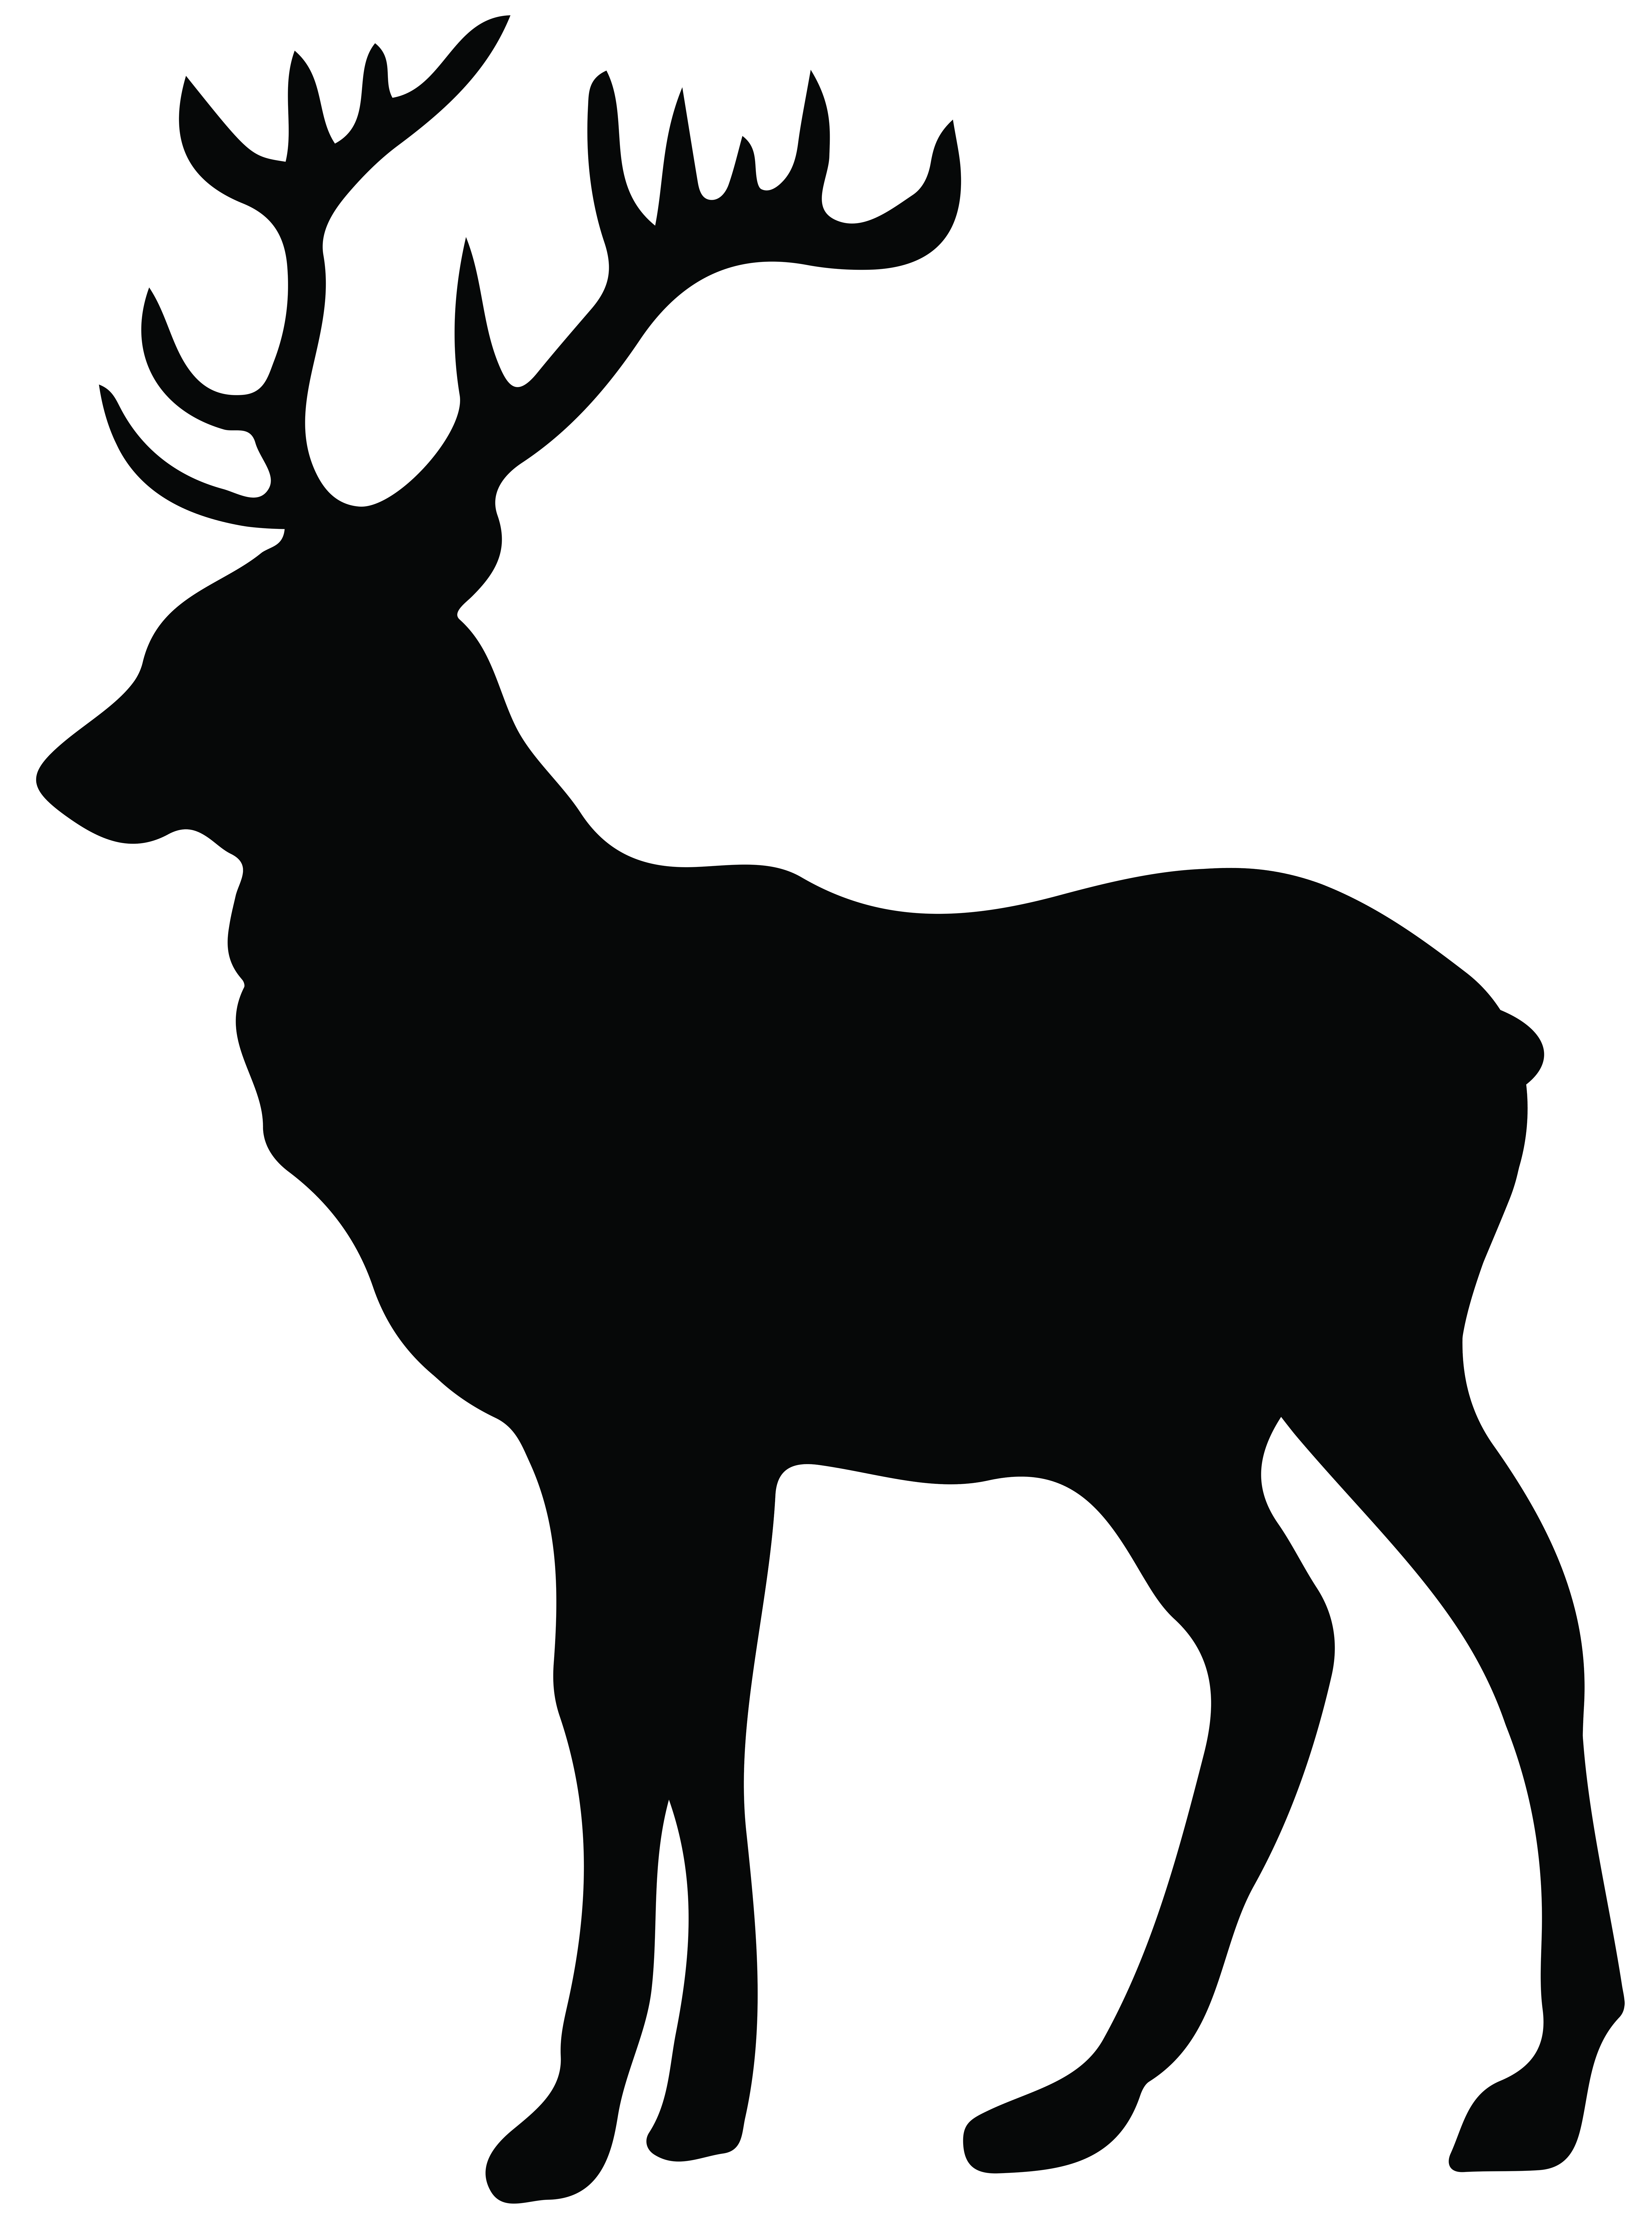 5953x8000 Stag Silhouette Png Transparent Clip Art Imageu200b Gallery